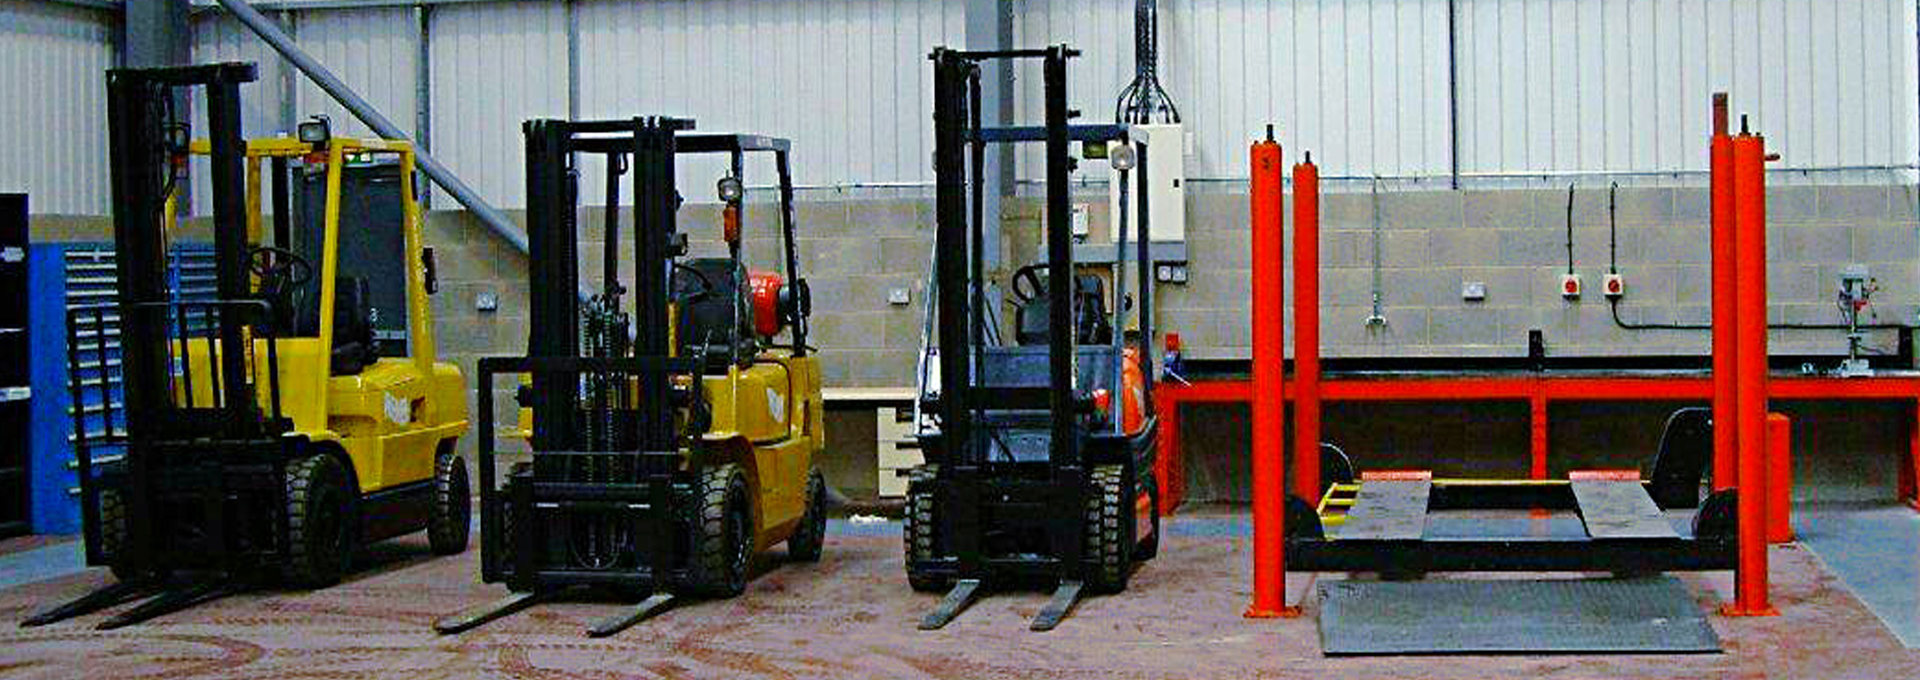 Forklift Truck Servicing and Repair